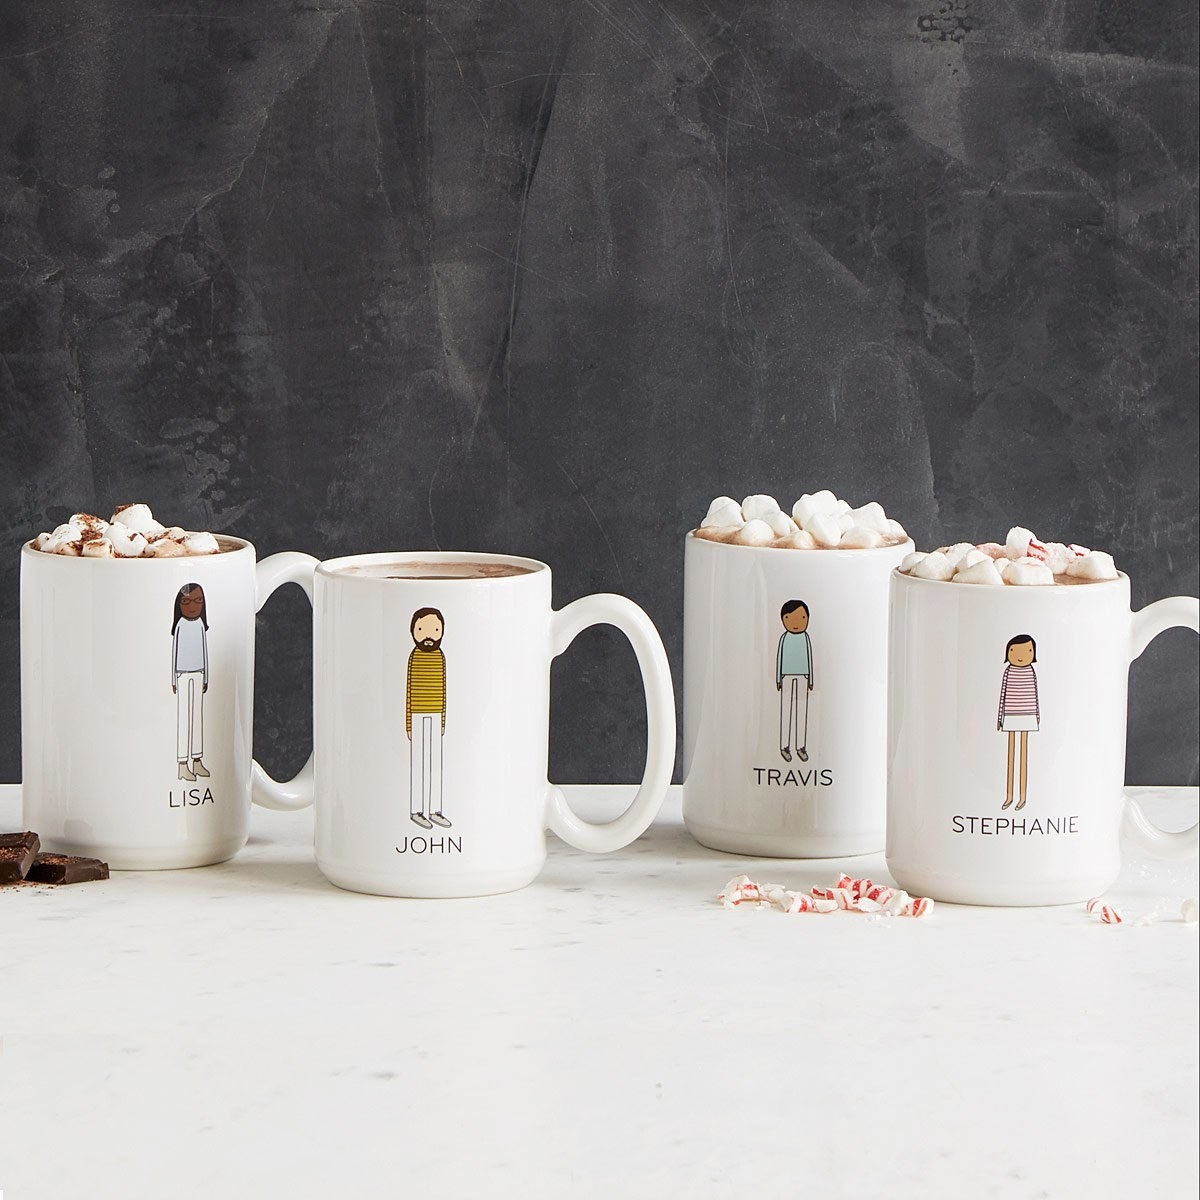 four coffee mugs with cartoons and names on them